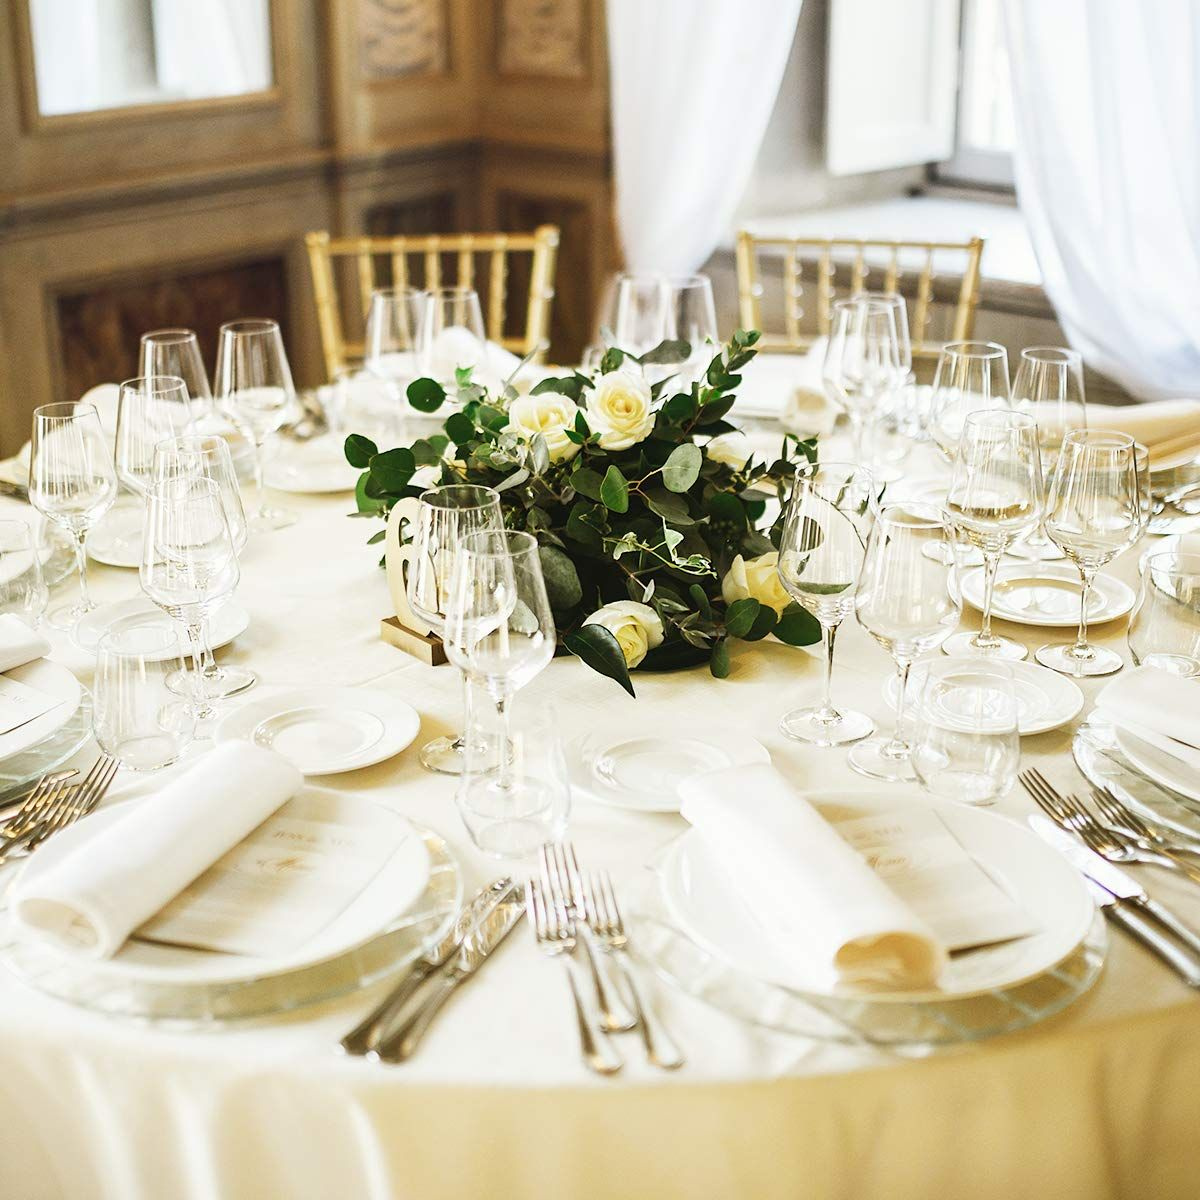 Giantex 10 Pcs Round Ivory Tablecloth 90 Inch Premium Polyester